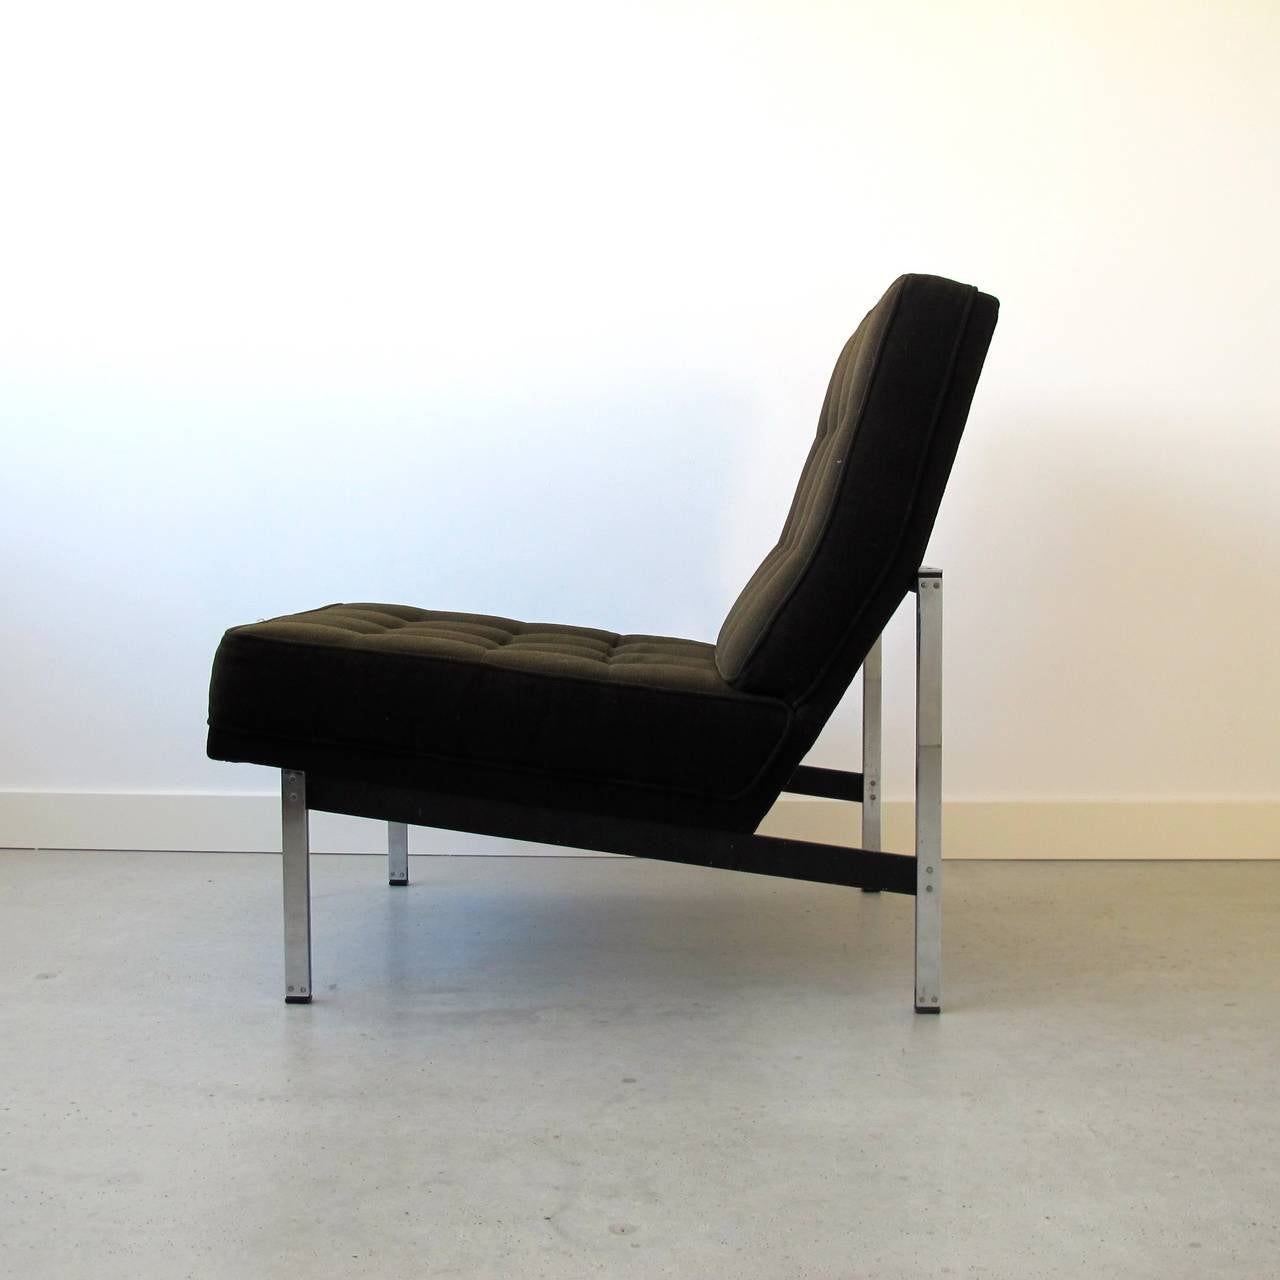 Metal Pair of Parallel Bar Lounge Chairs by Florence Knoll, circa 1955